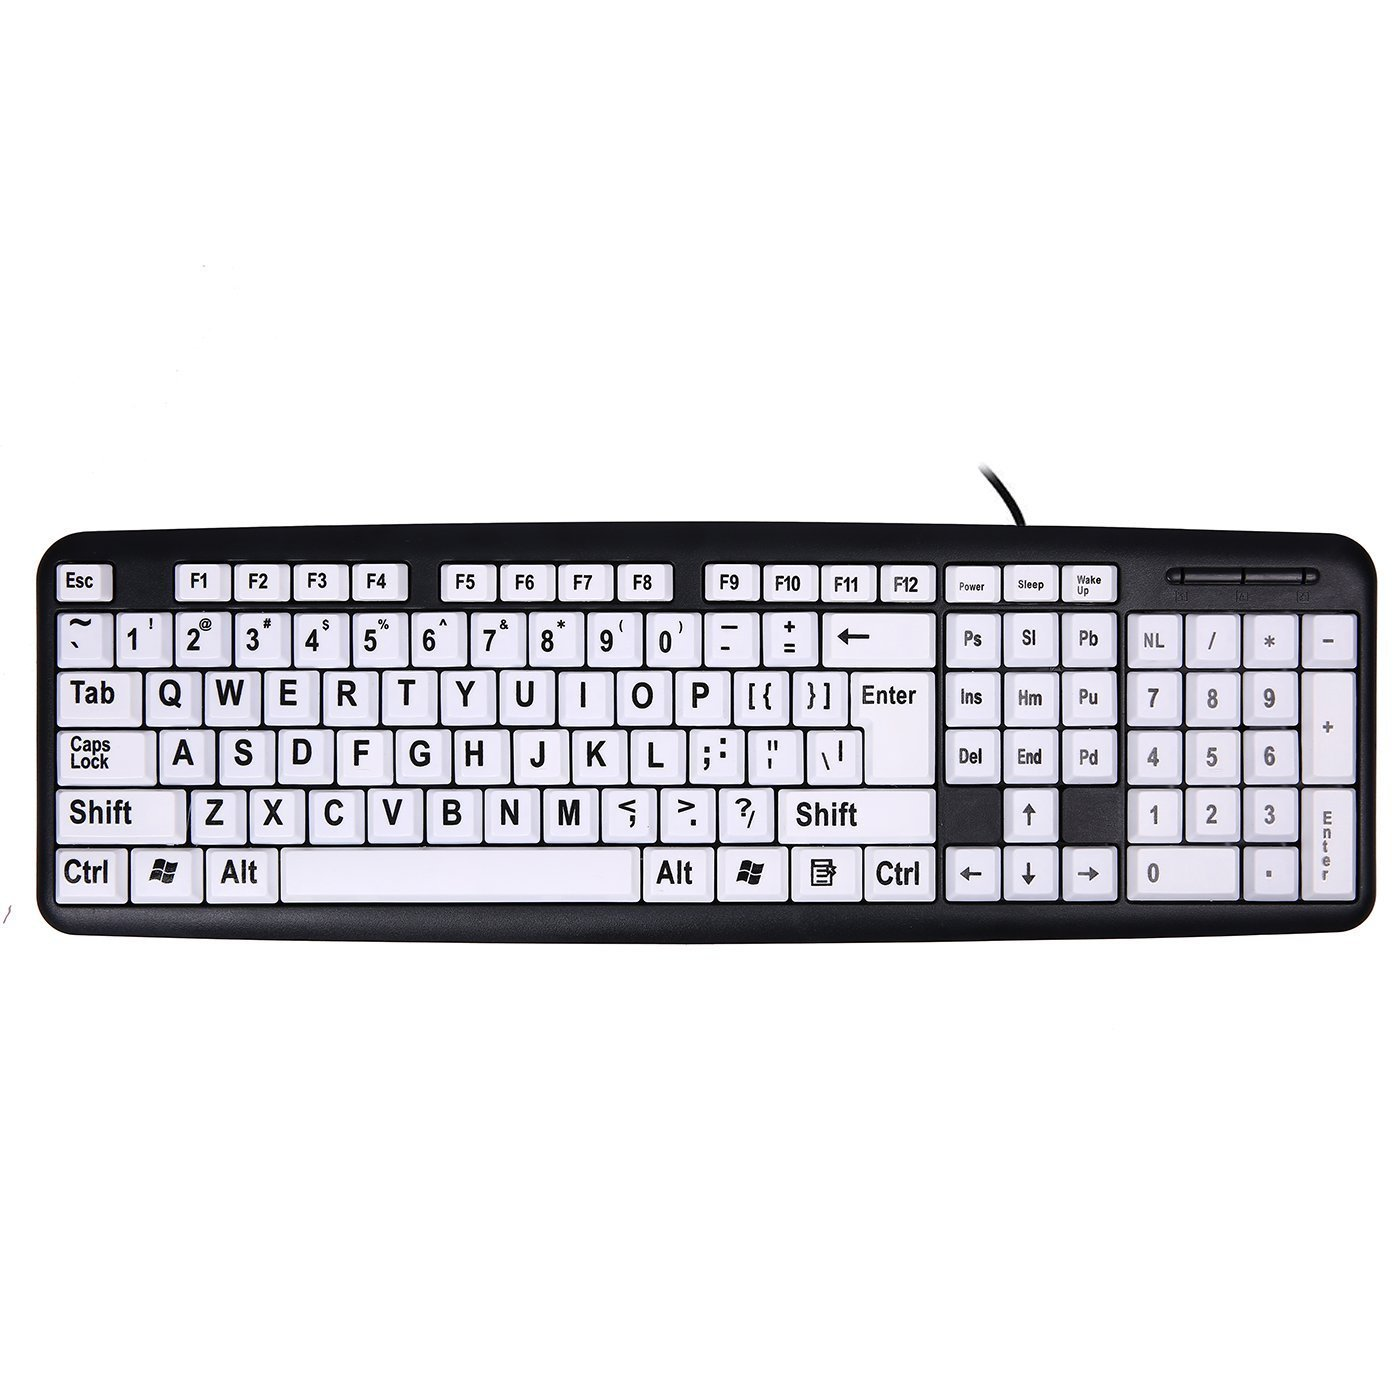 bf1c751fc25 Get Quotations · USB Wired Keyboard,Attoe Vision Keyboard with Large Print  Letter and White Keys & Black